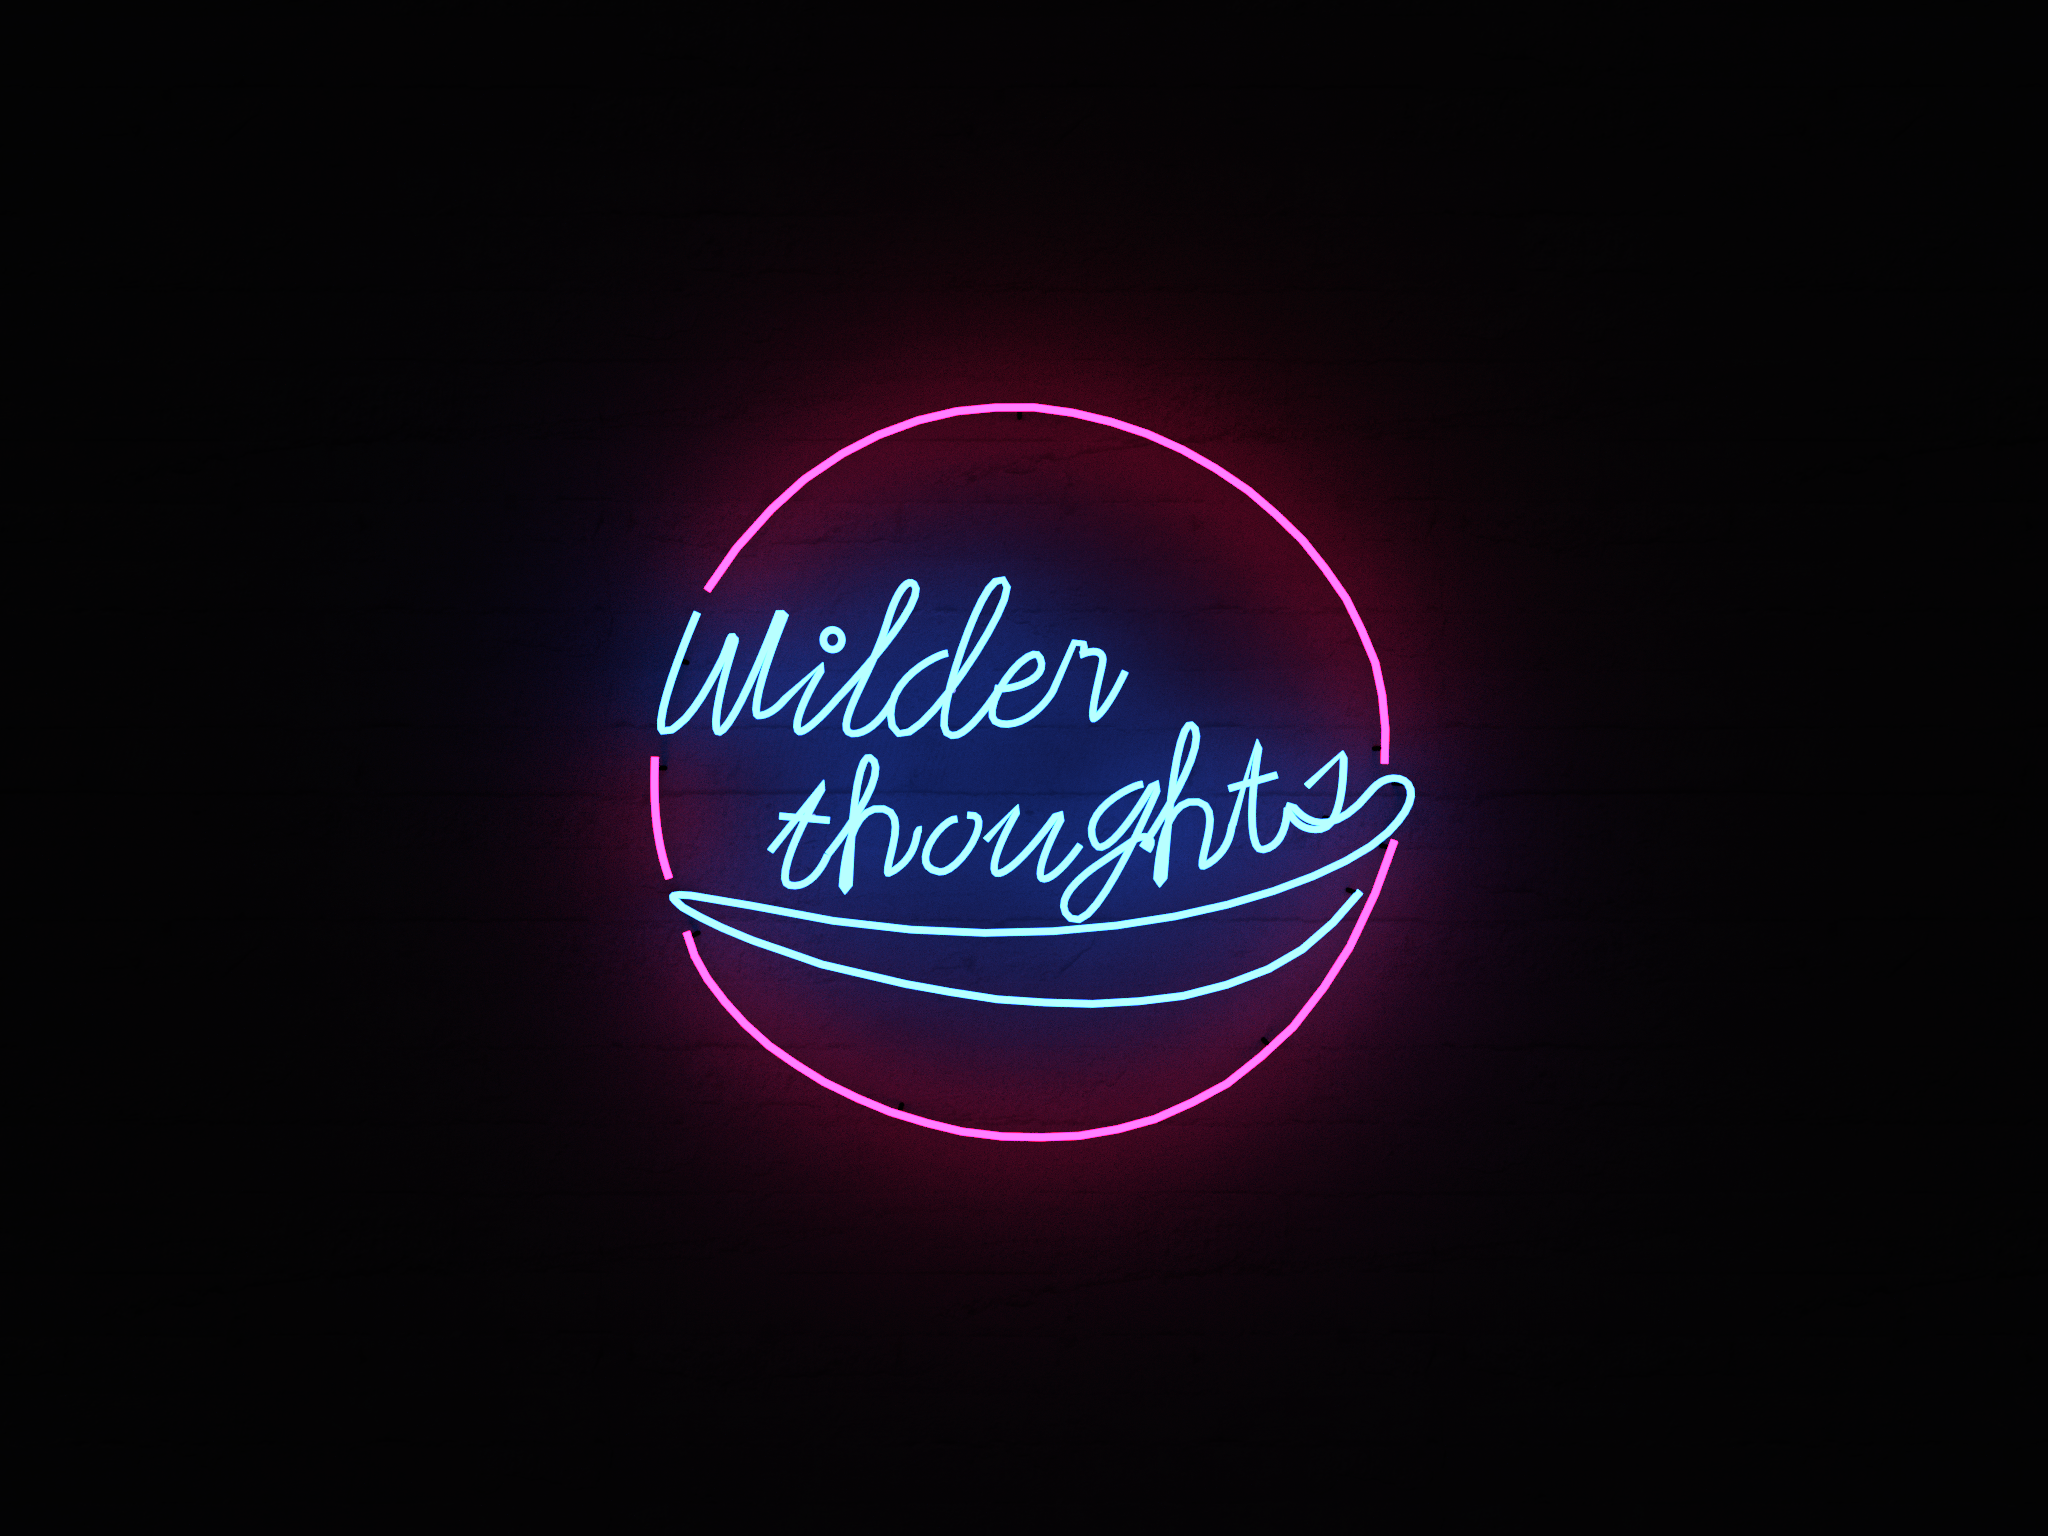 Wilder Thoughts Neon sign